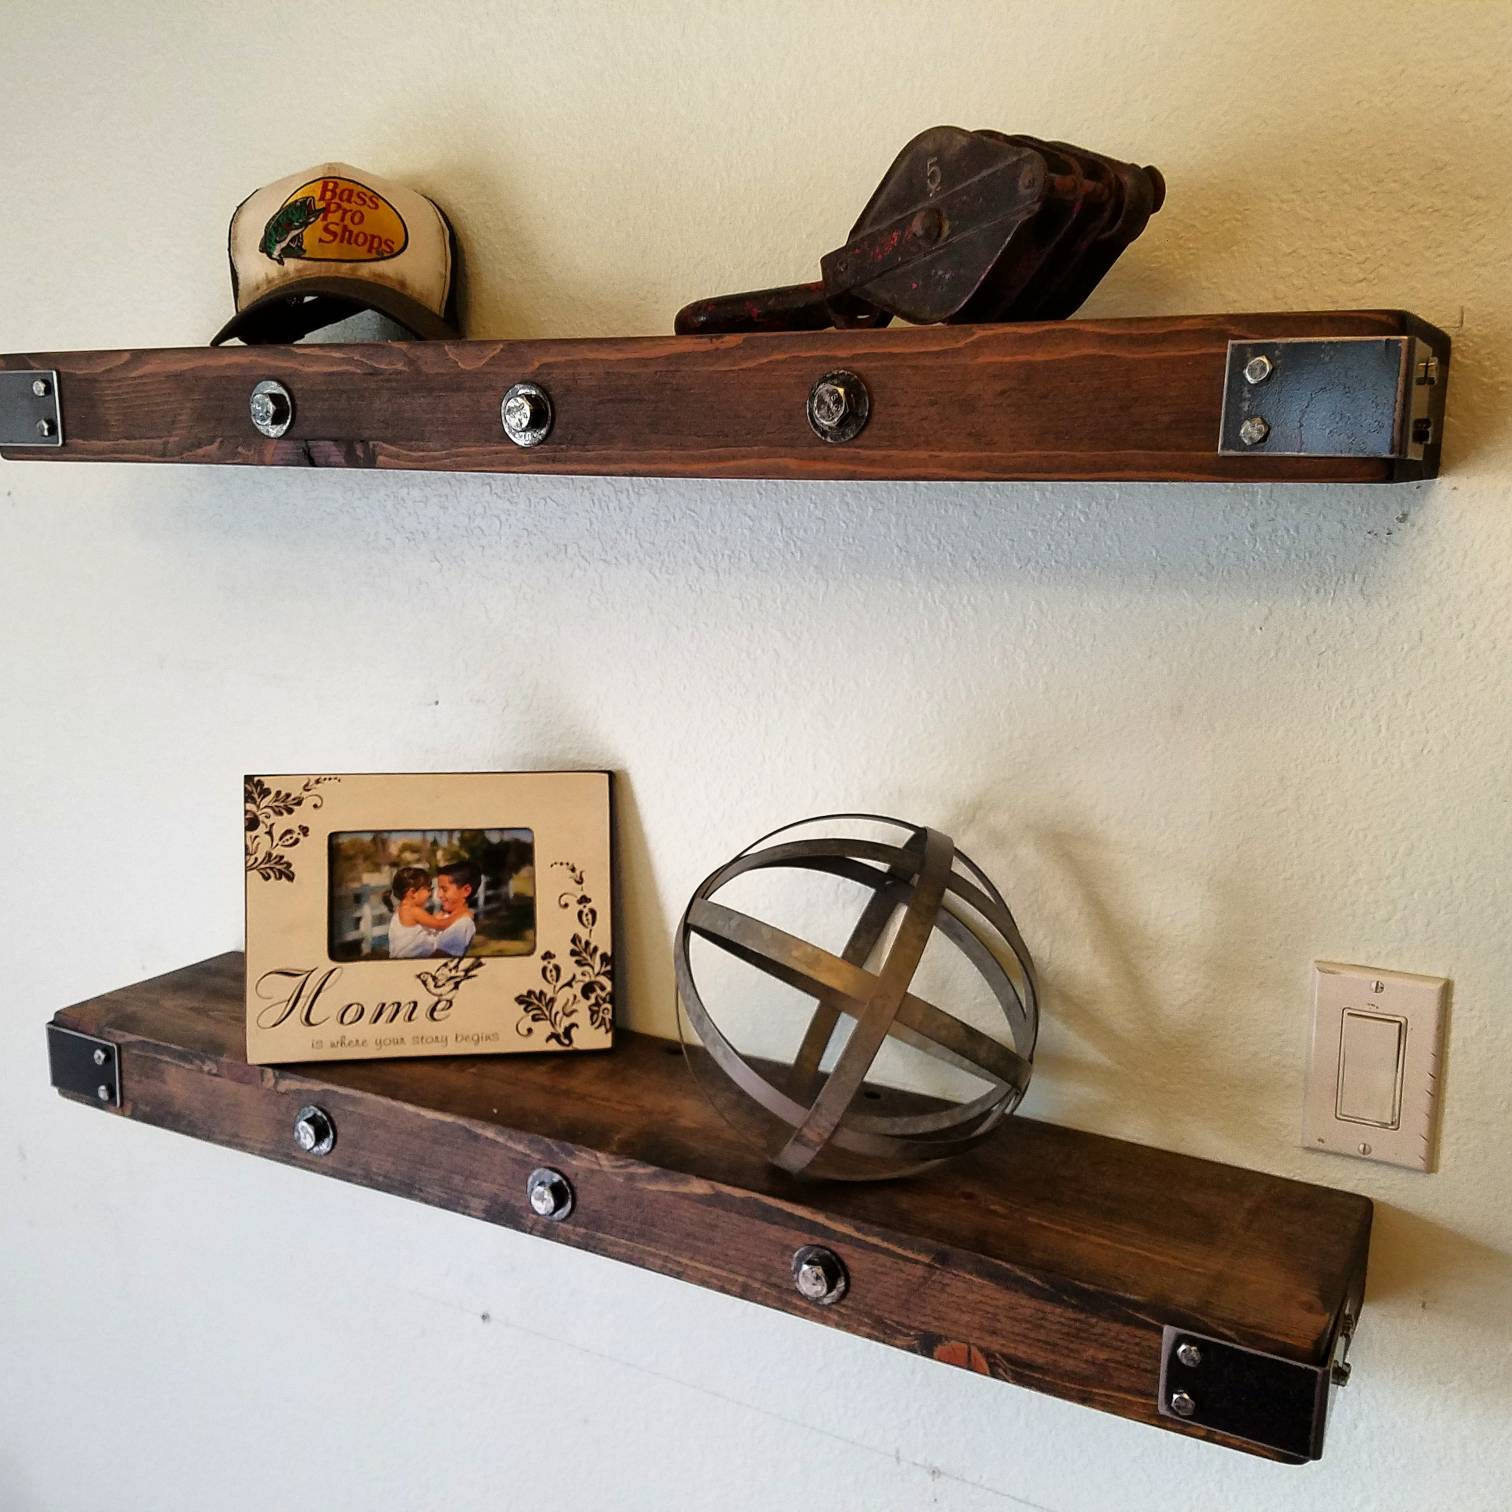 handmade rustic and reclaimed wooden floating shelves wood etsy fullxfull corner shelf adjustable garage shelving bathroom open unit large brackets entryway coat rack ribba ture